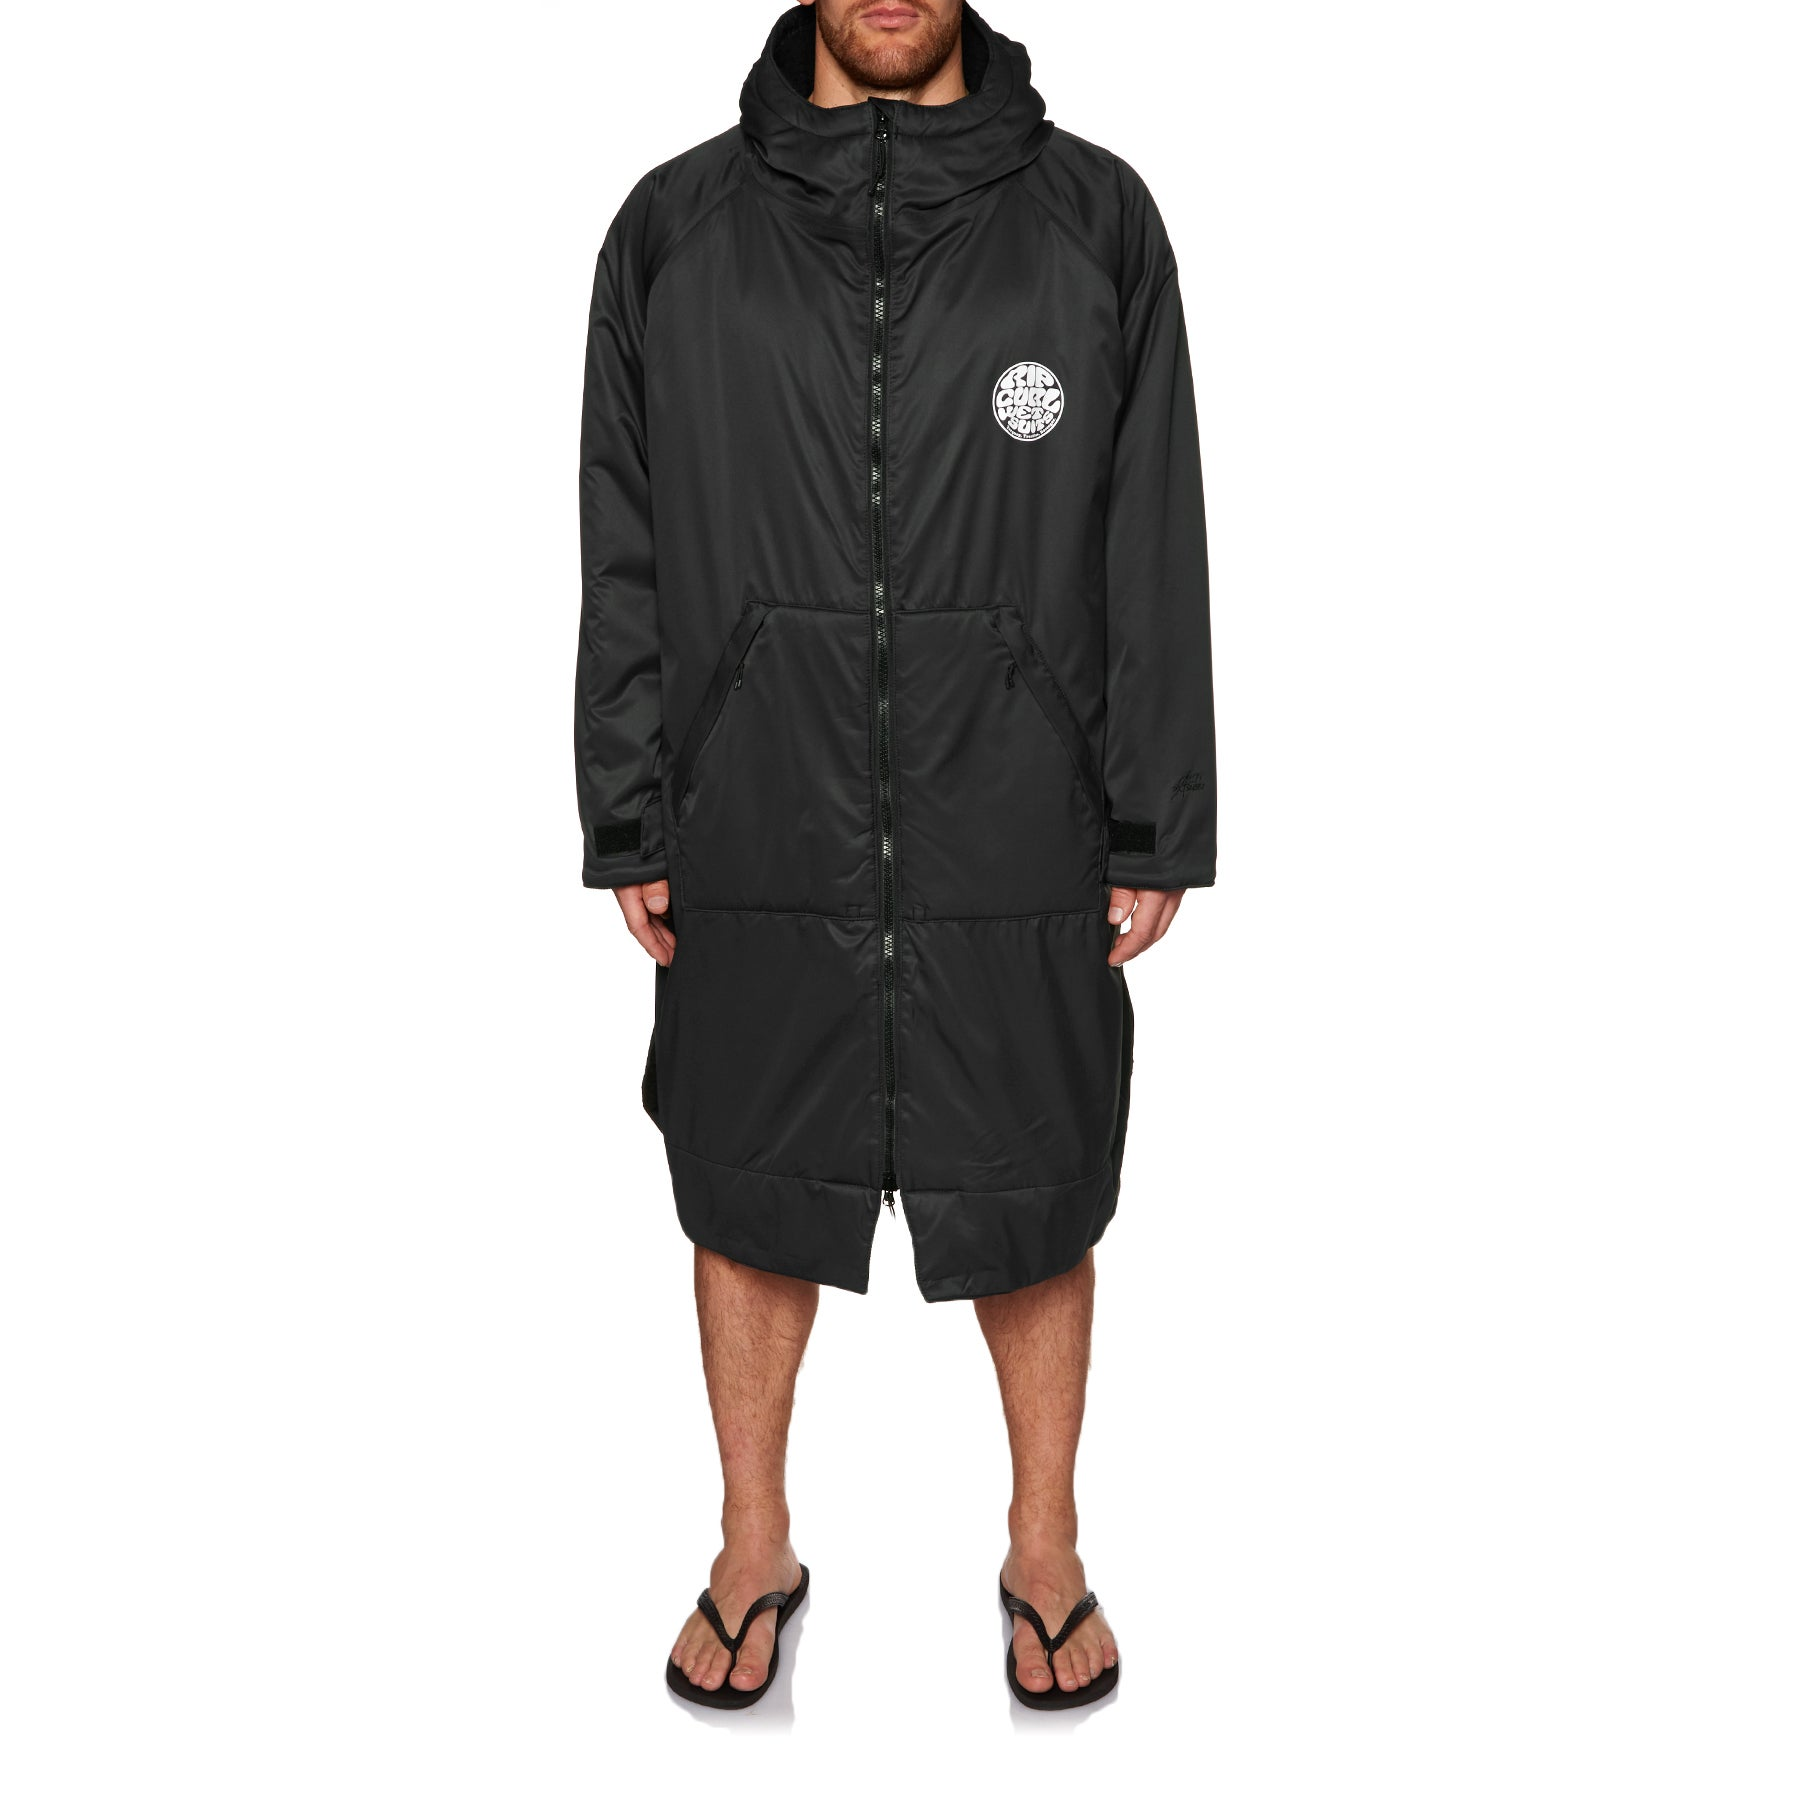 Rip Curl Winter Surf Poncho Changing Robe